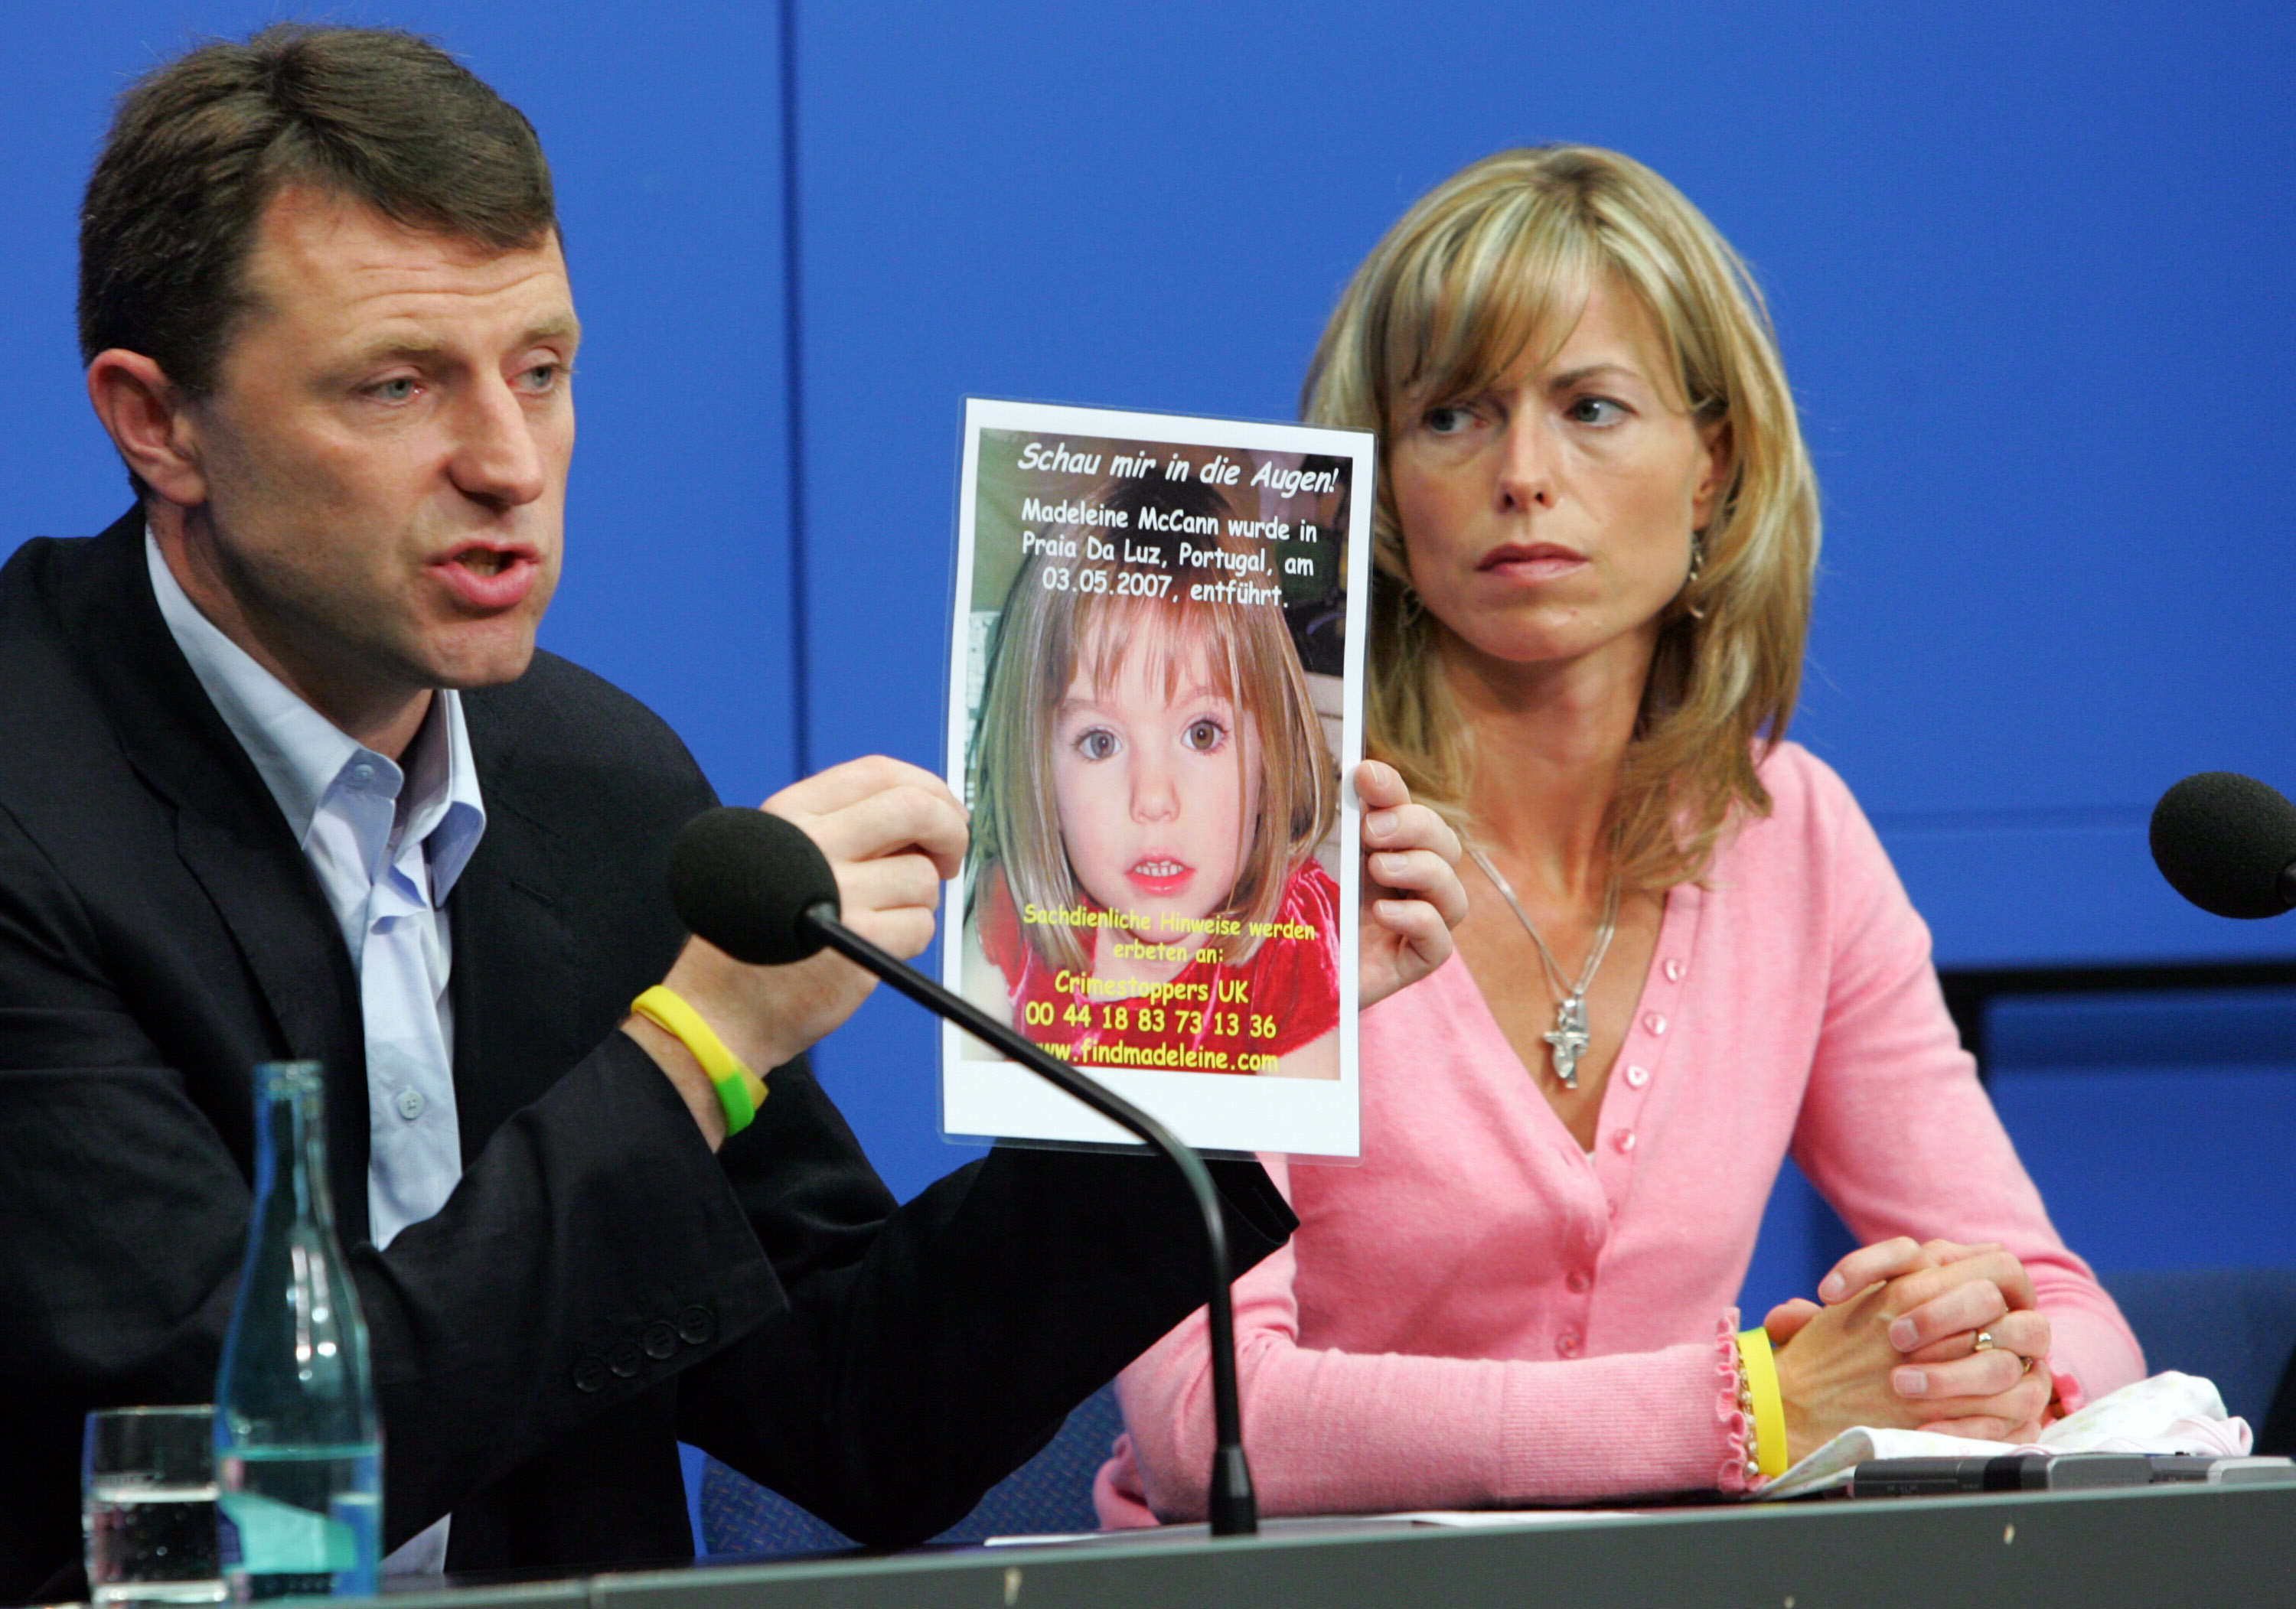 Police Searching For Madeleine McCann End Forensic Investigation To Save Money mccann1